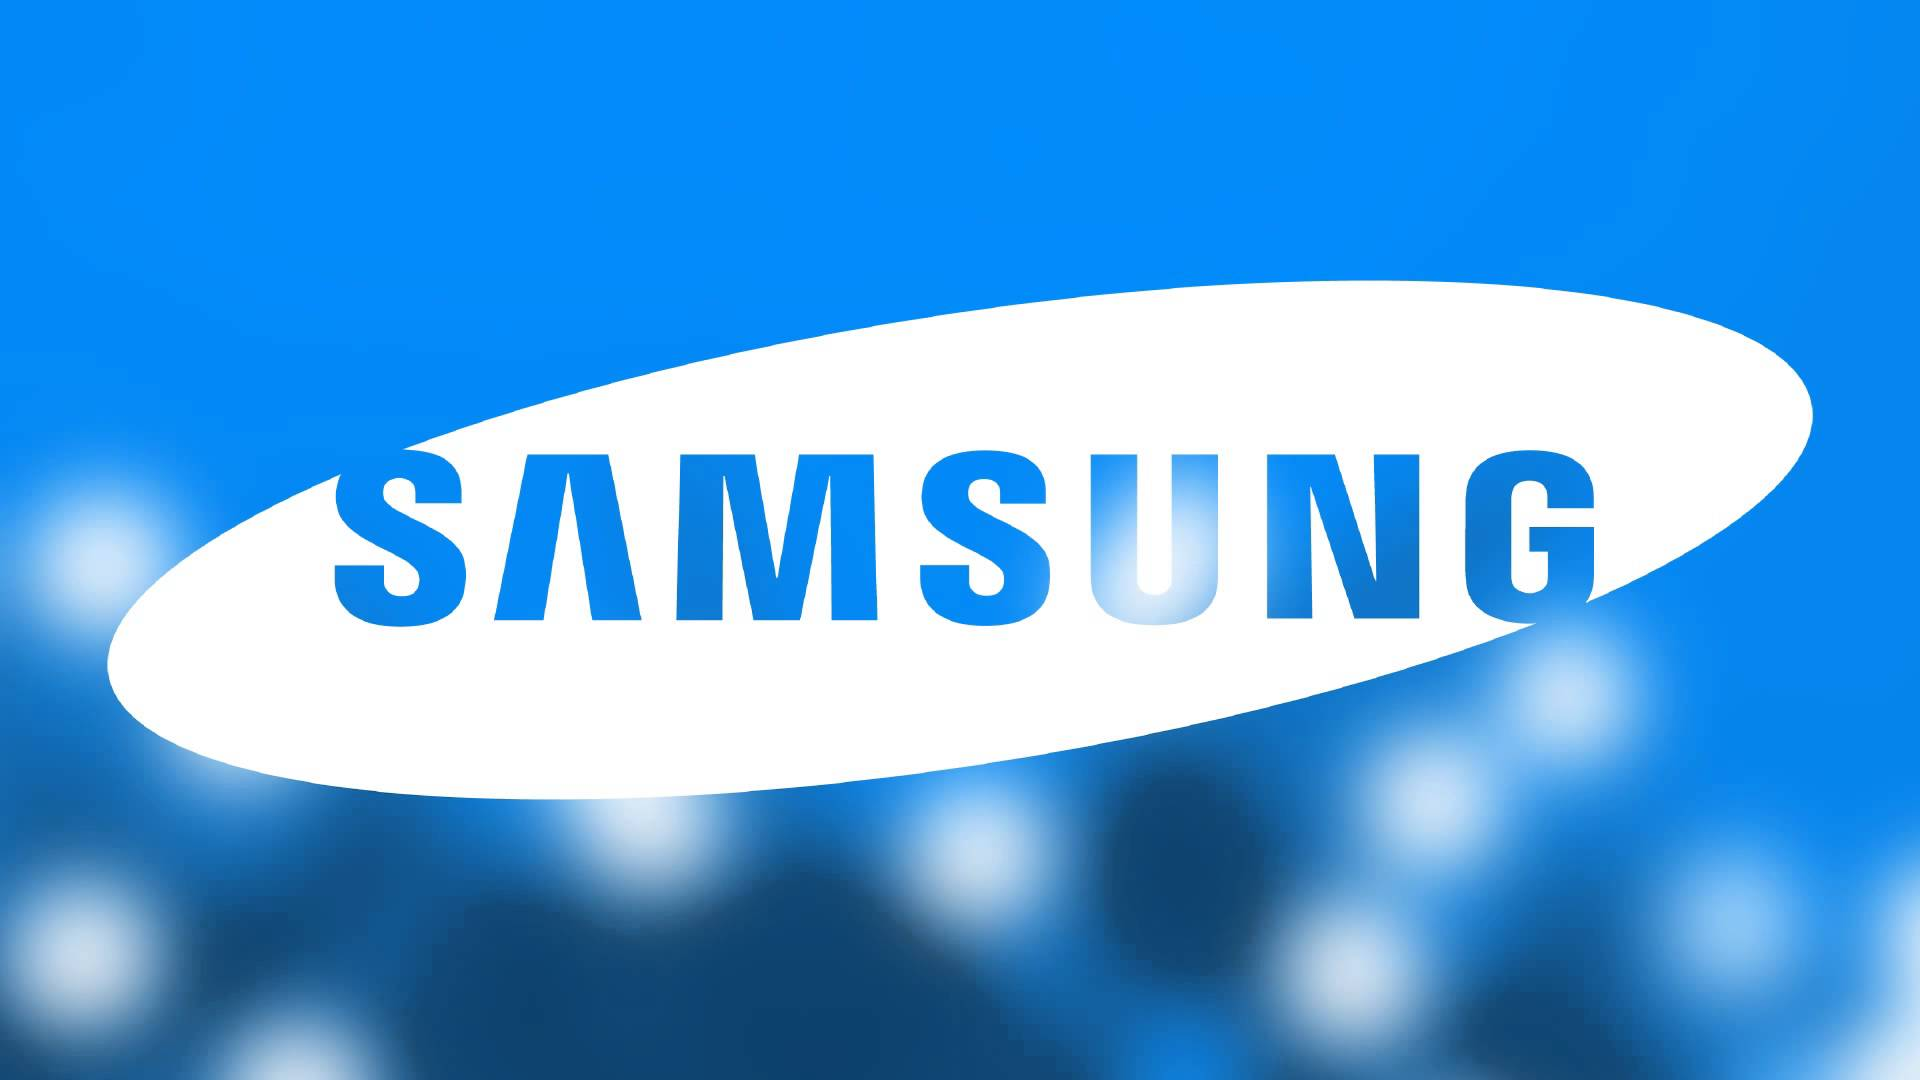 Samsung Galaxy J6 will have Infinity Display